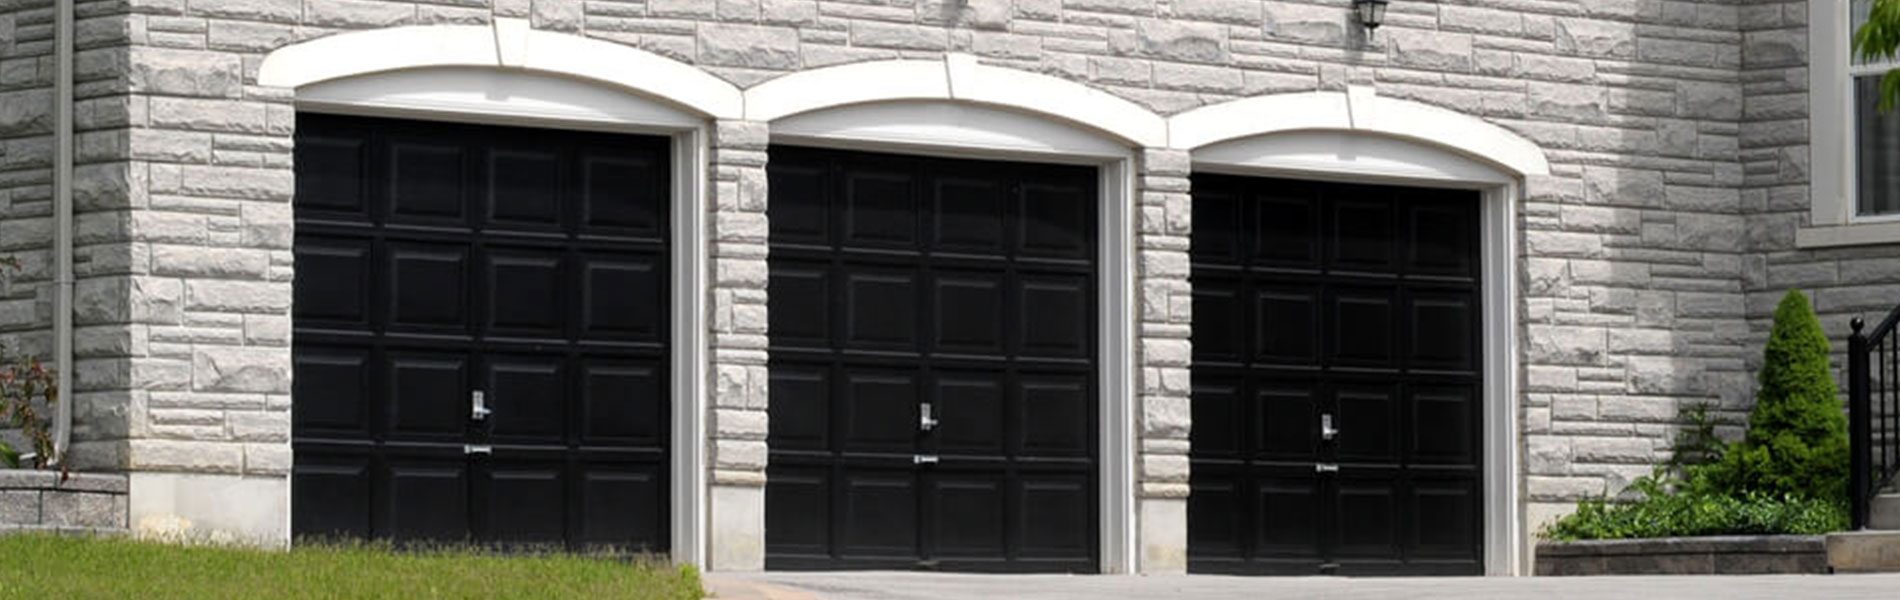 Neighborhood Garage Door Repair Service, Baltimore, MD 410-803-6853